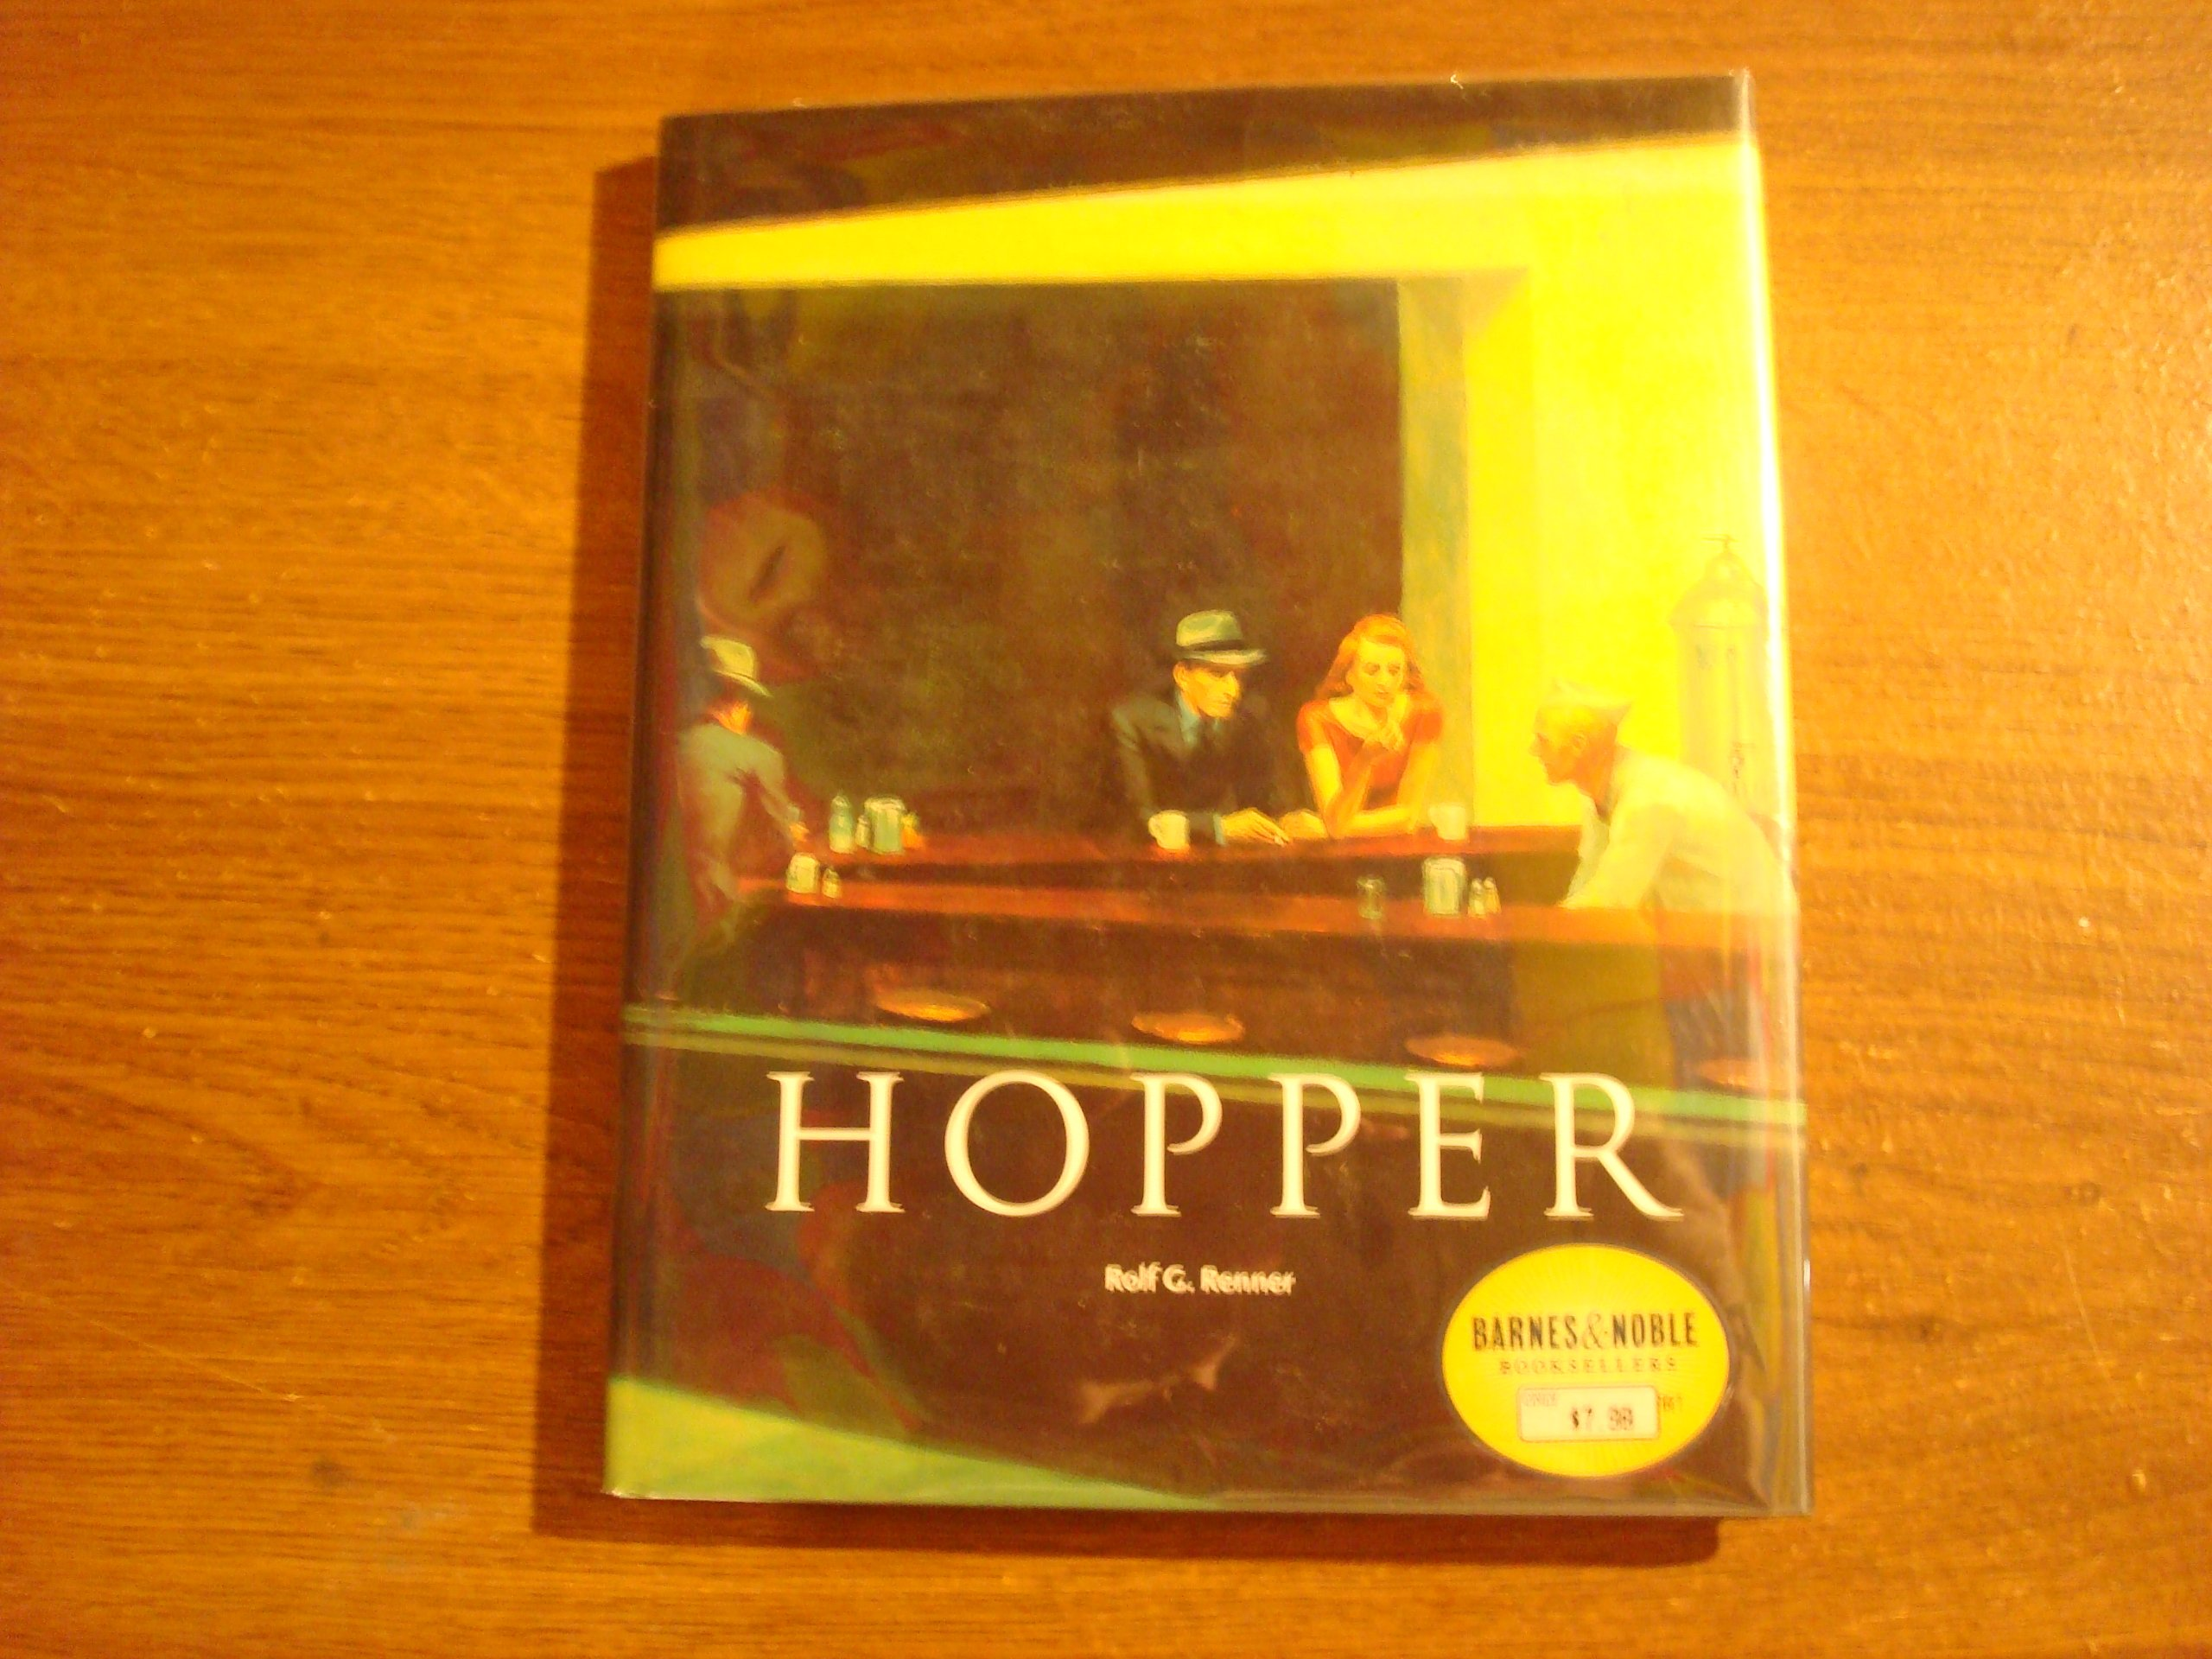 Edward Hopper 1882-1967 Transformation of the Real